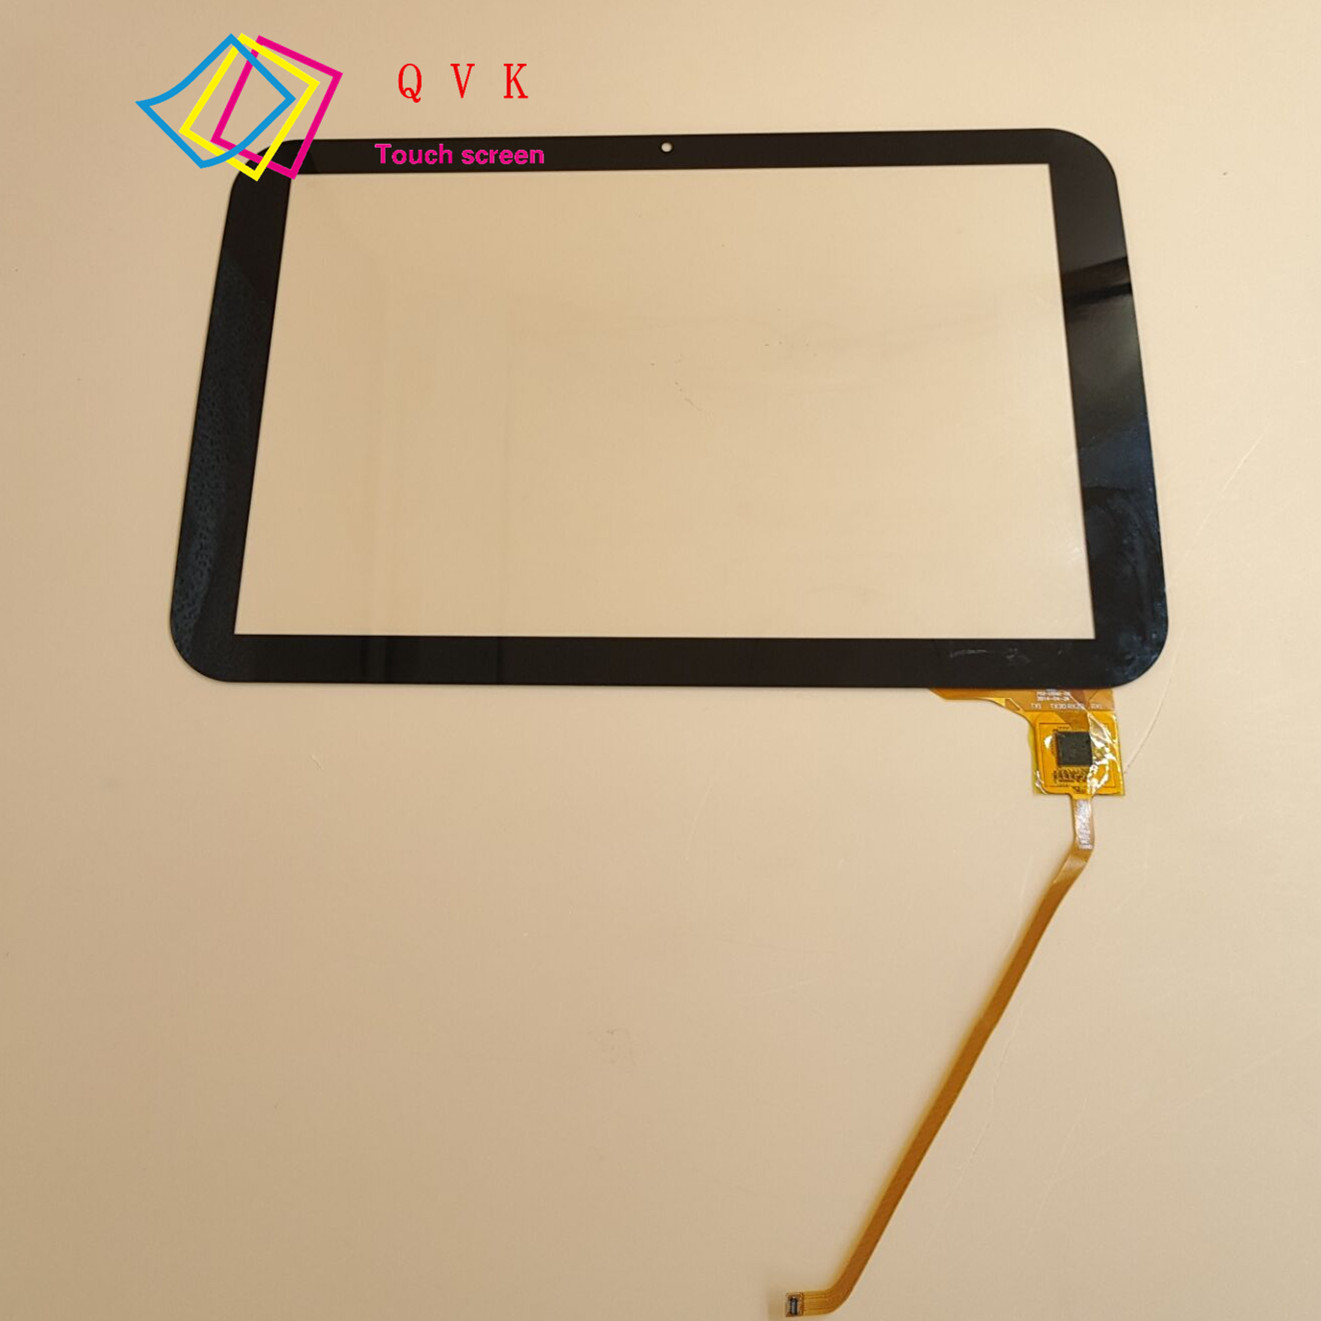 Original cable code QSD 702-10061-02 10.1 QUMO Sirius 1001 Tablet Touch Screen Touch Panel digitizer Glass Sensor Replacement new for 10 1 inch qumo sirius 1001 tablet capacitive touch screen panel digitizer glass sensor replacement free shipping